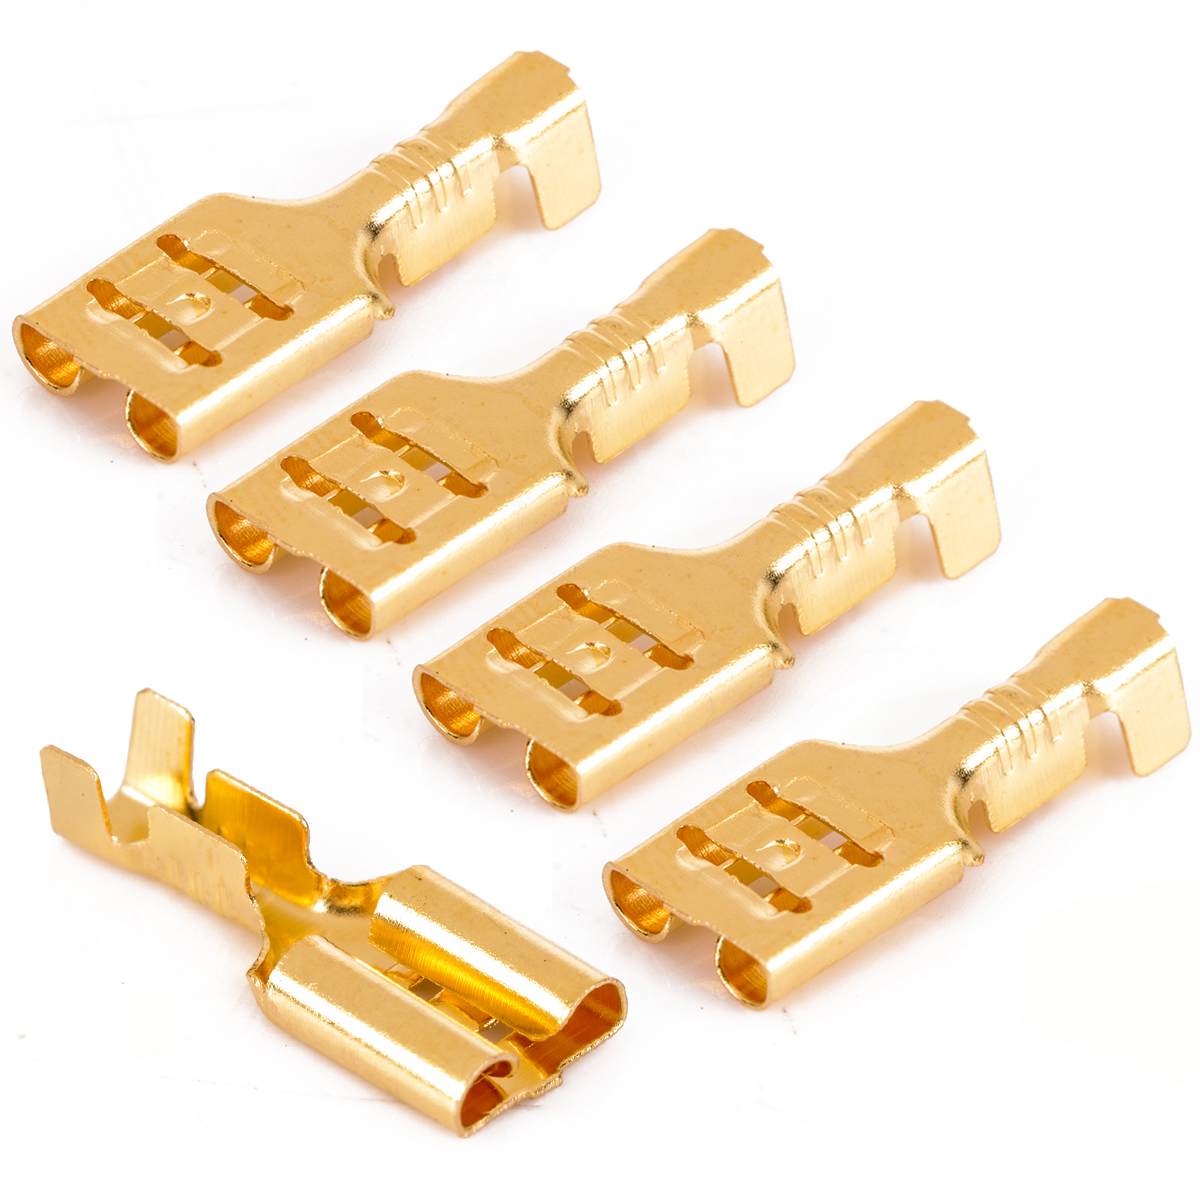 Uninsulated Female Gold 6.3mm Spade Terminals Connectors Crimp Electrical Wire